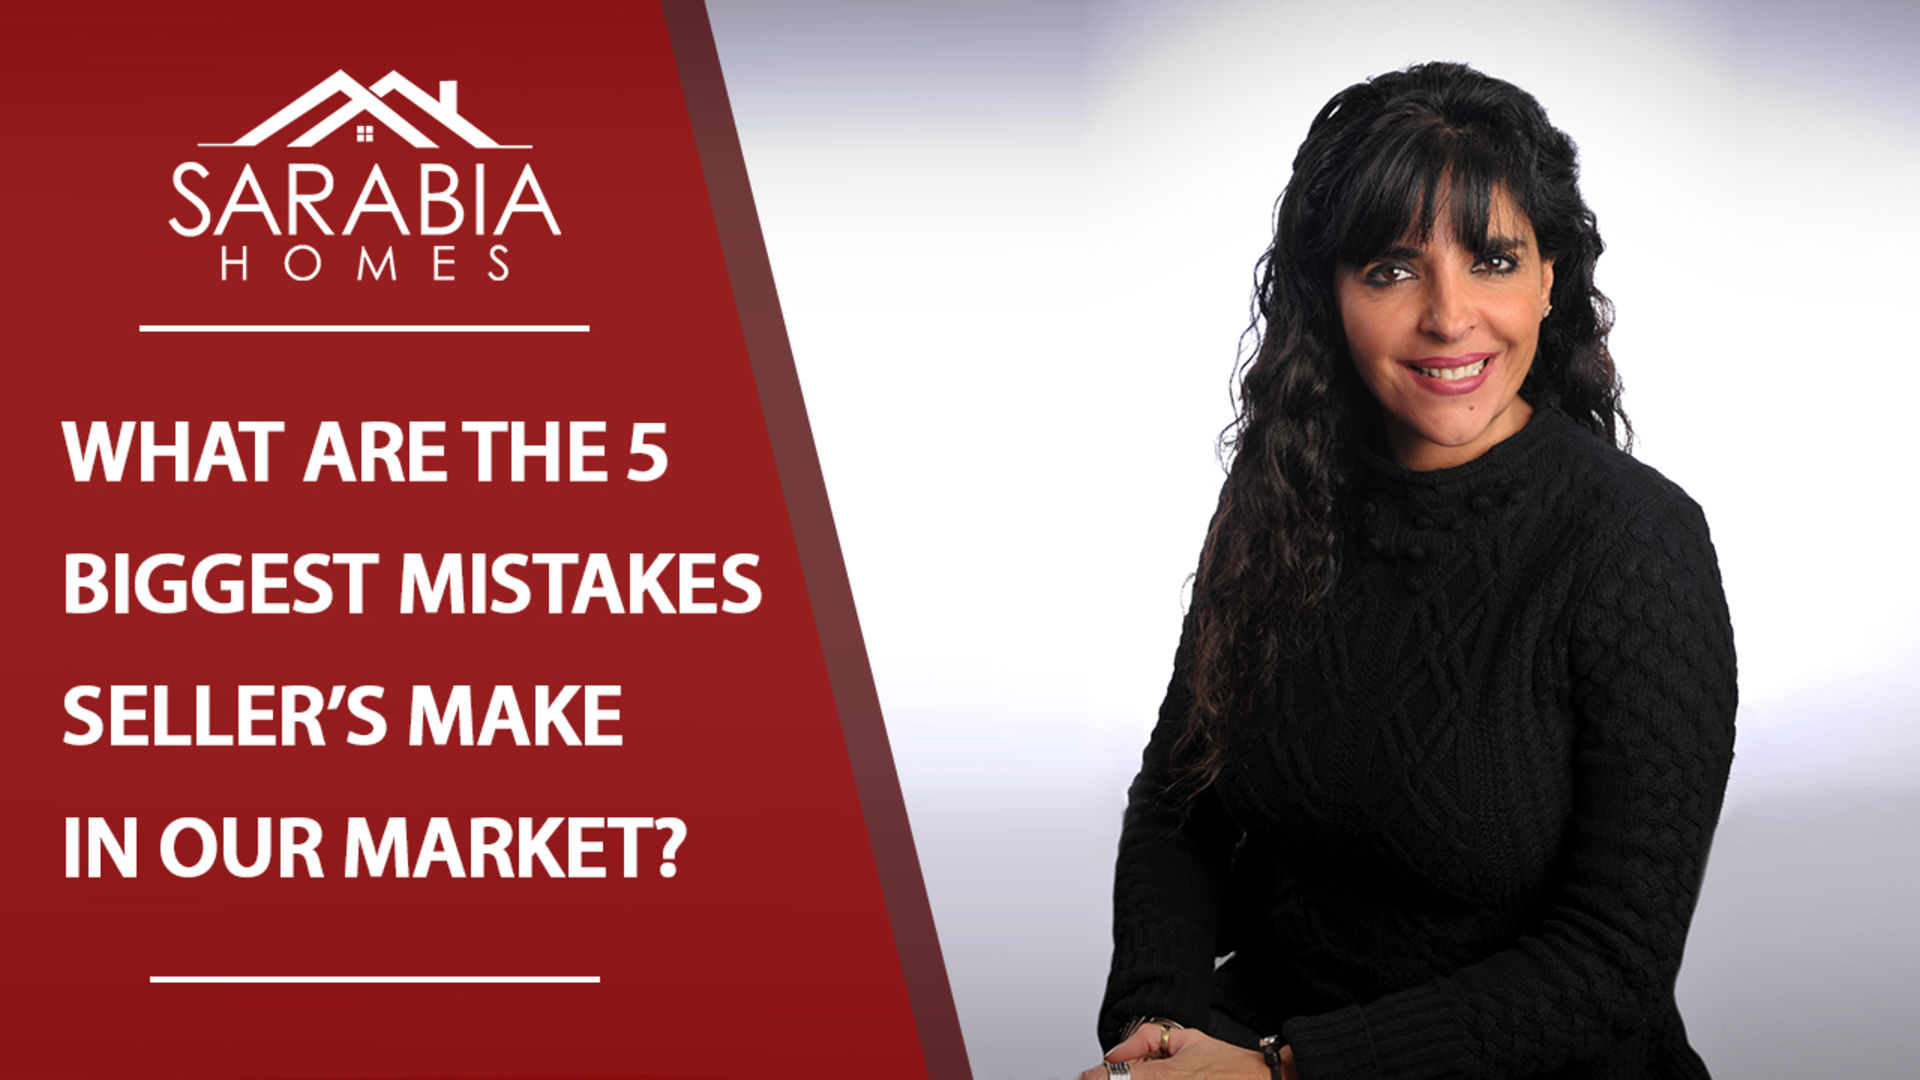 What Are the 5 Biggest Mistakes Seller's Make in Our Real Estate Market?